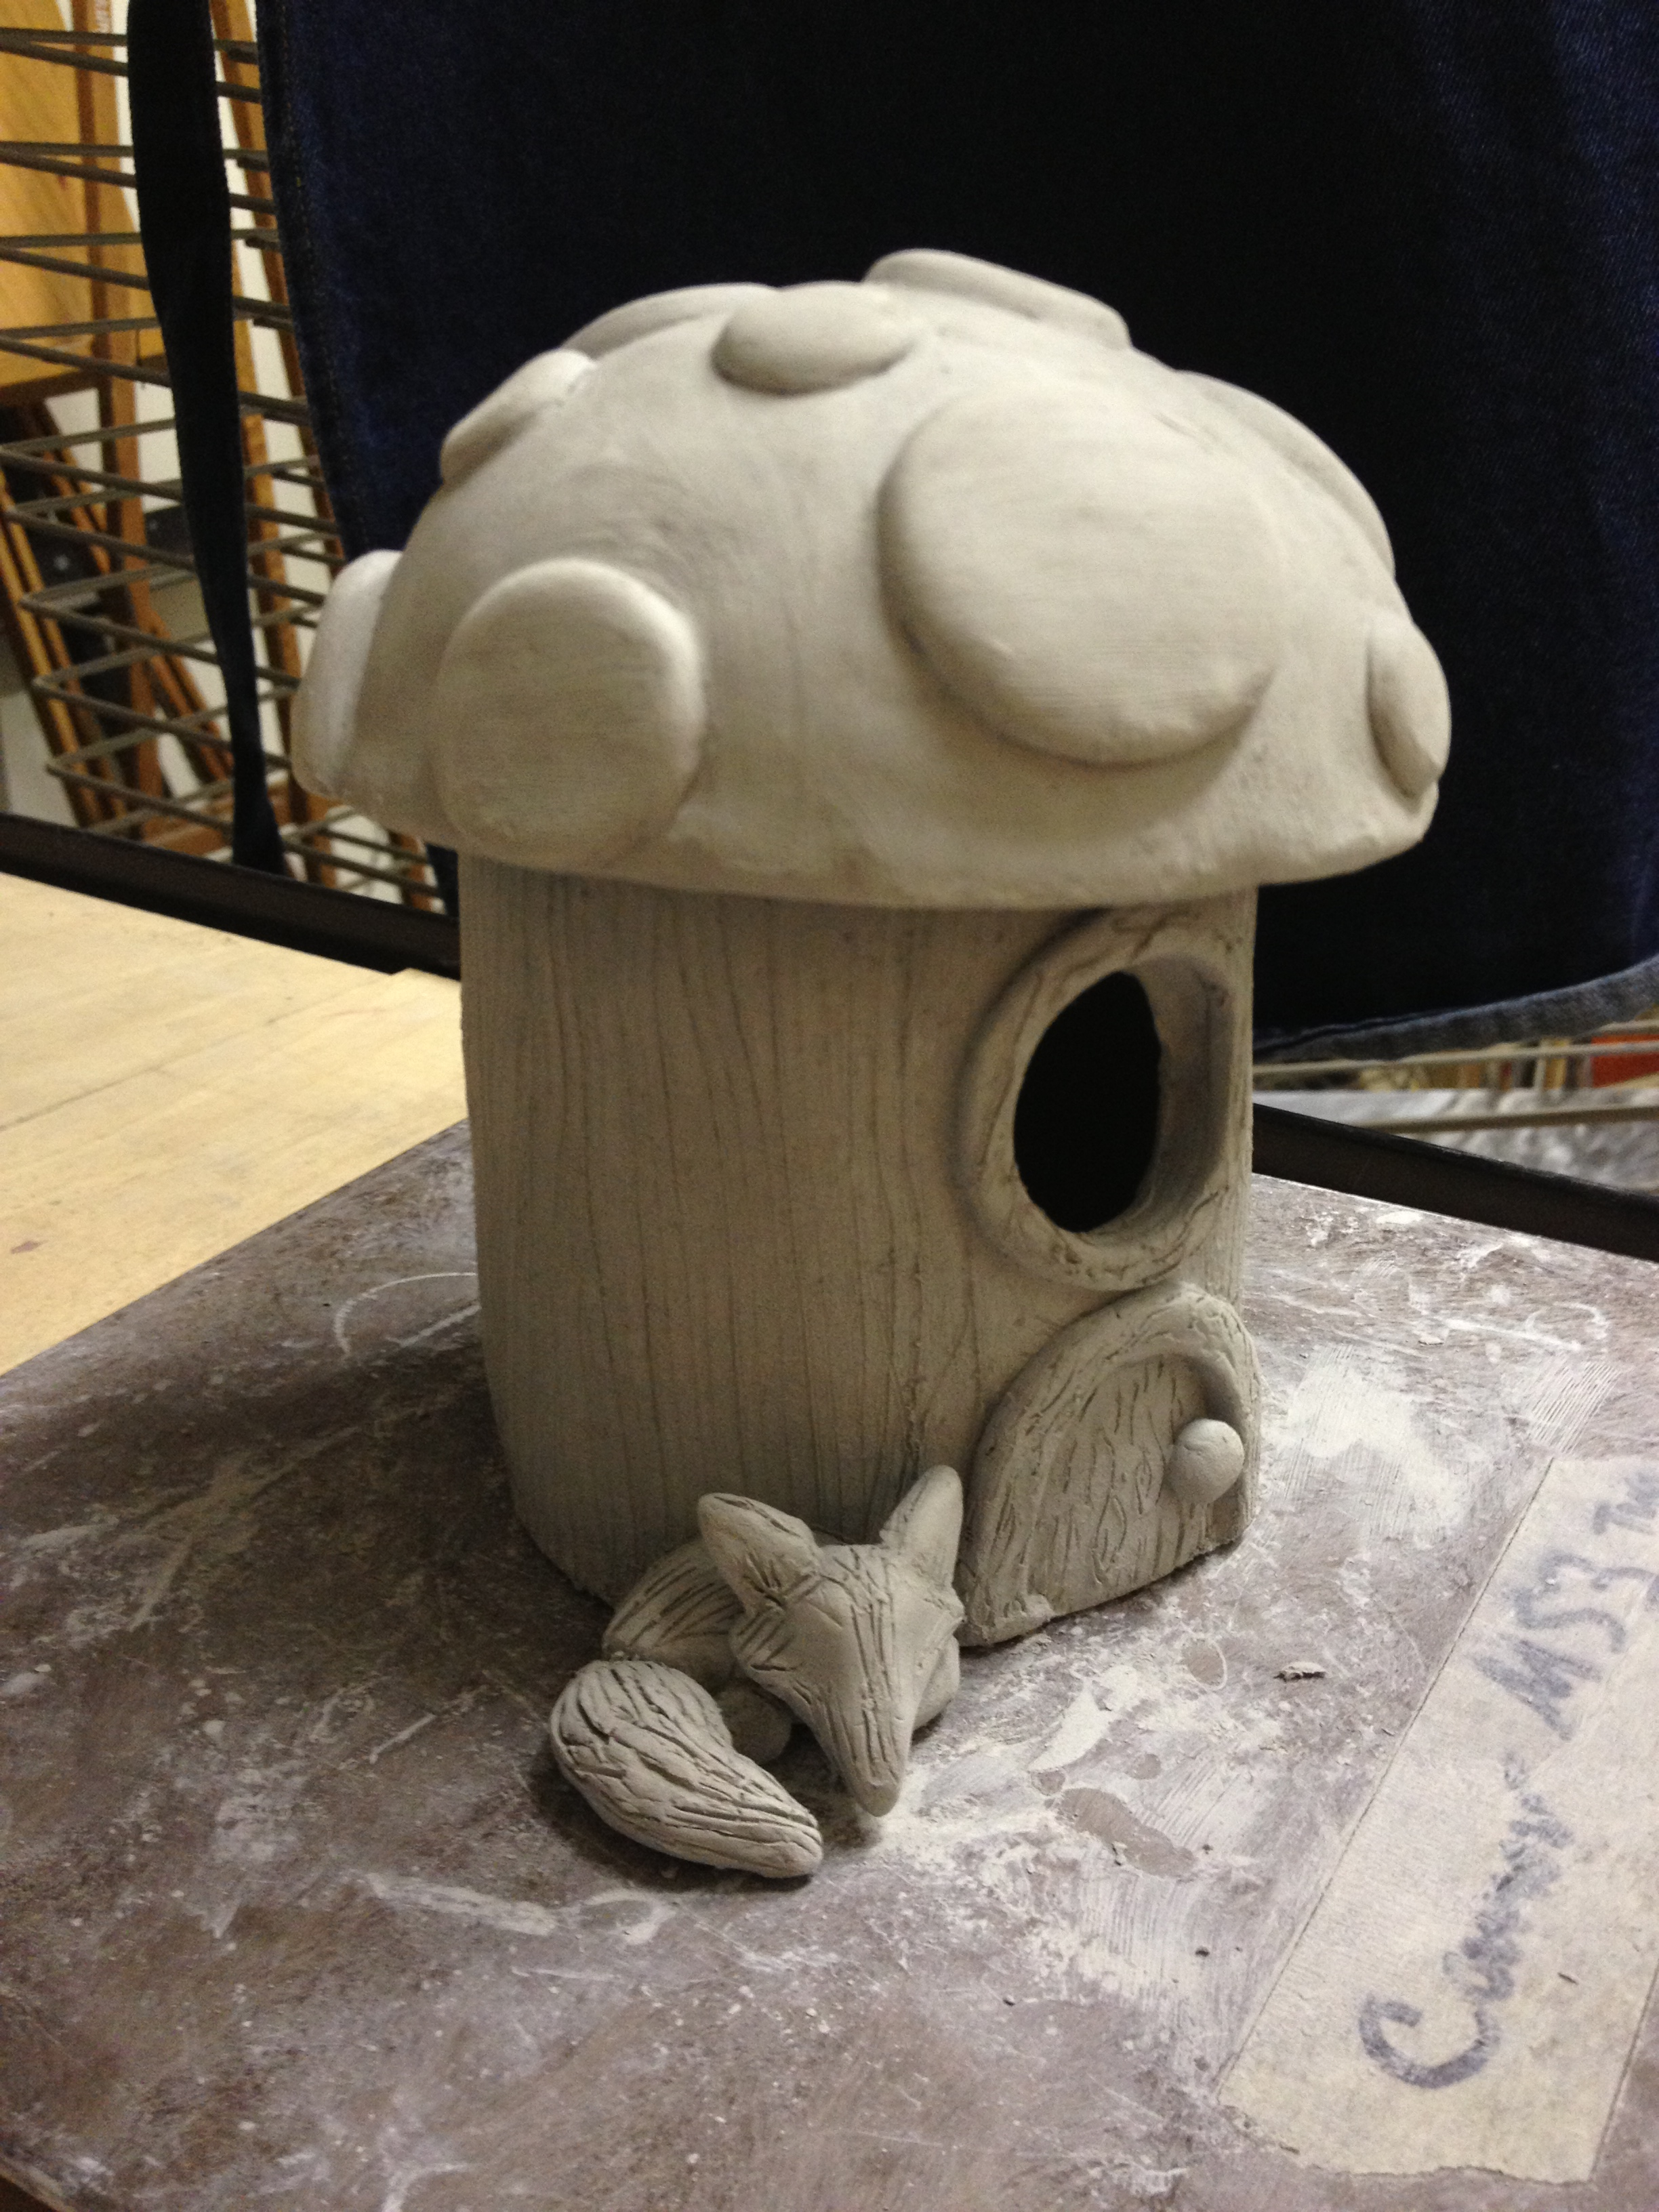 Ceramic fairy house create art with me for How to make ceramic painting